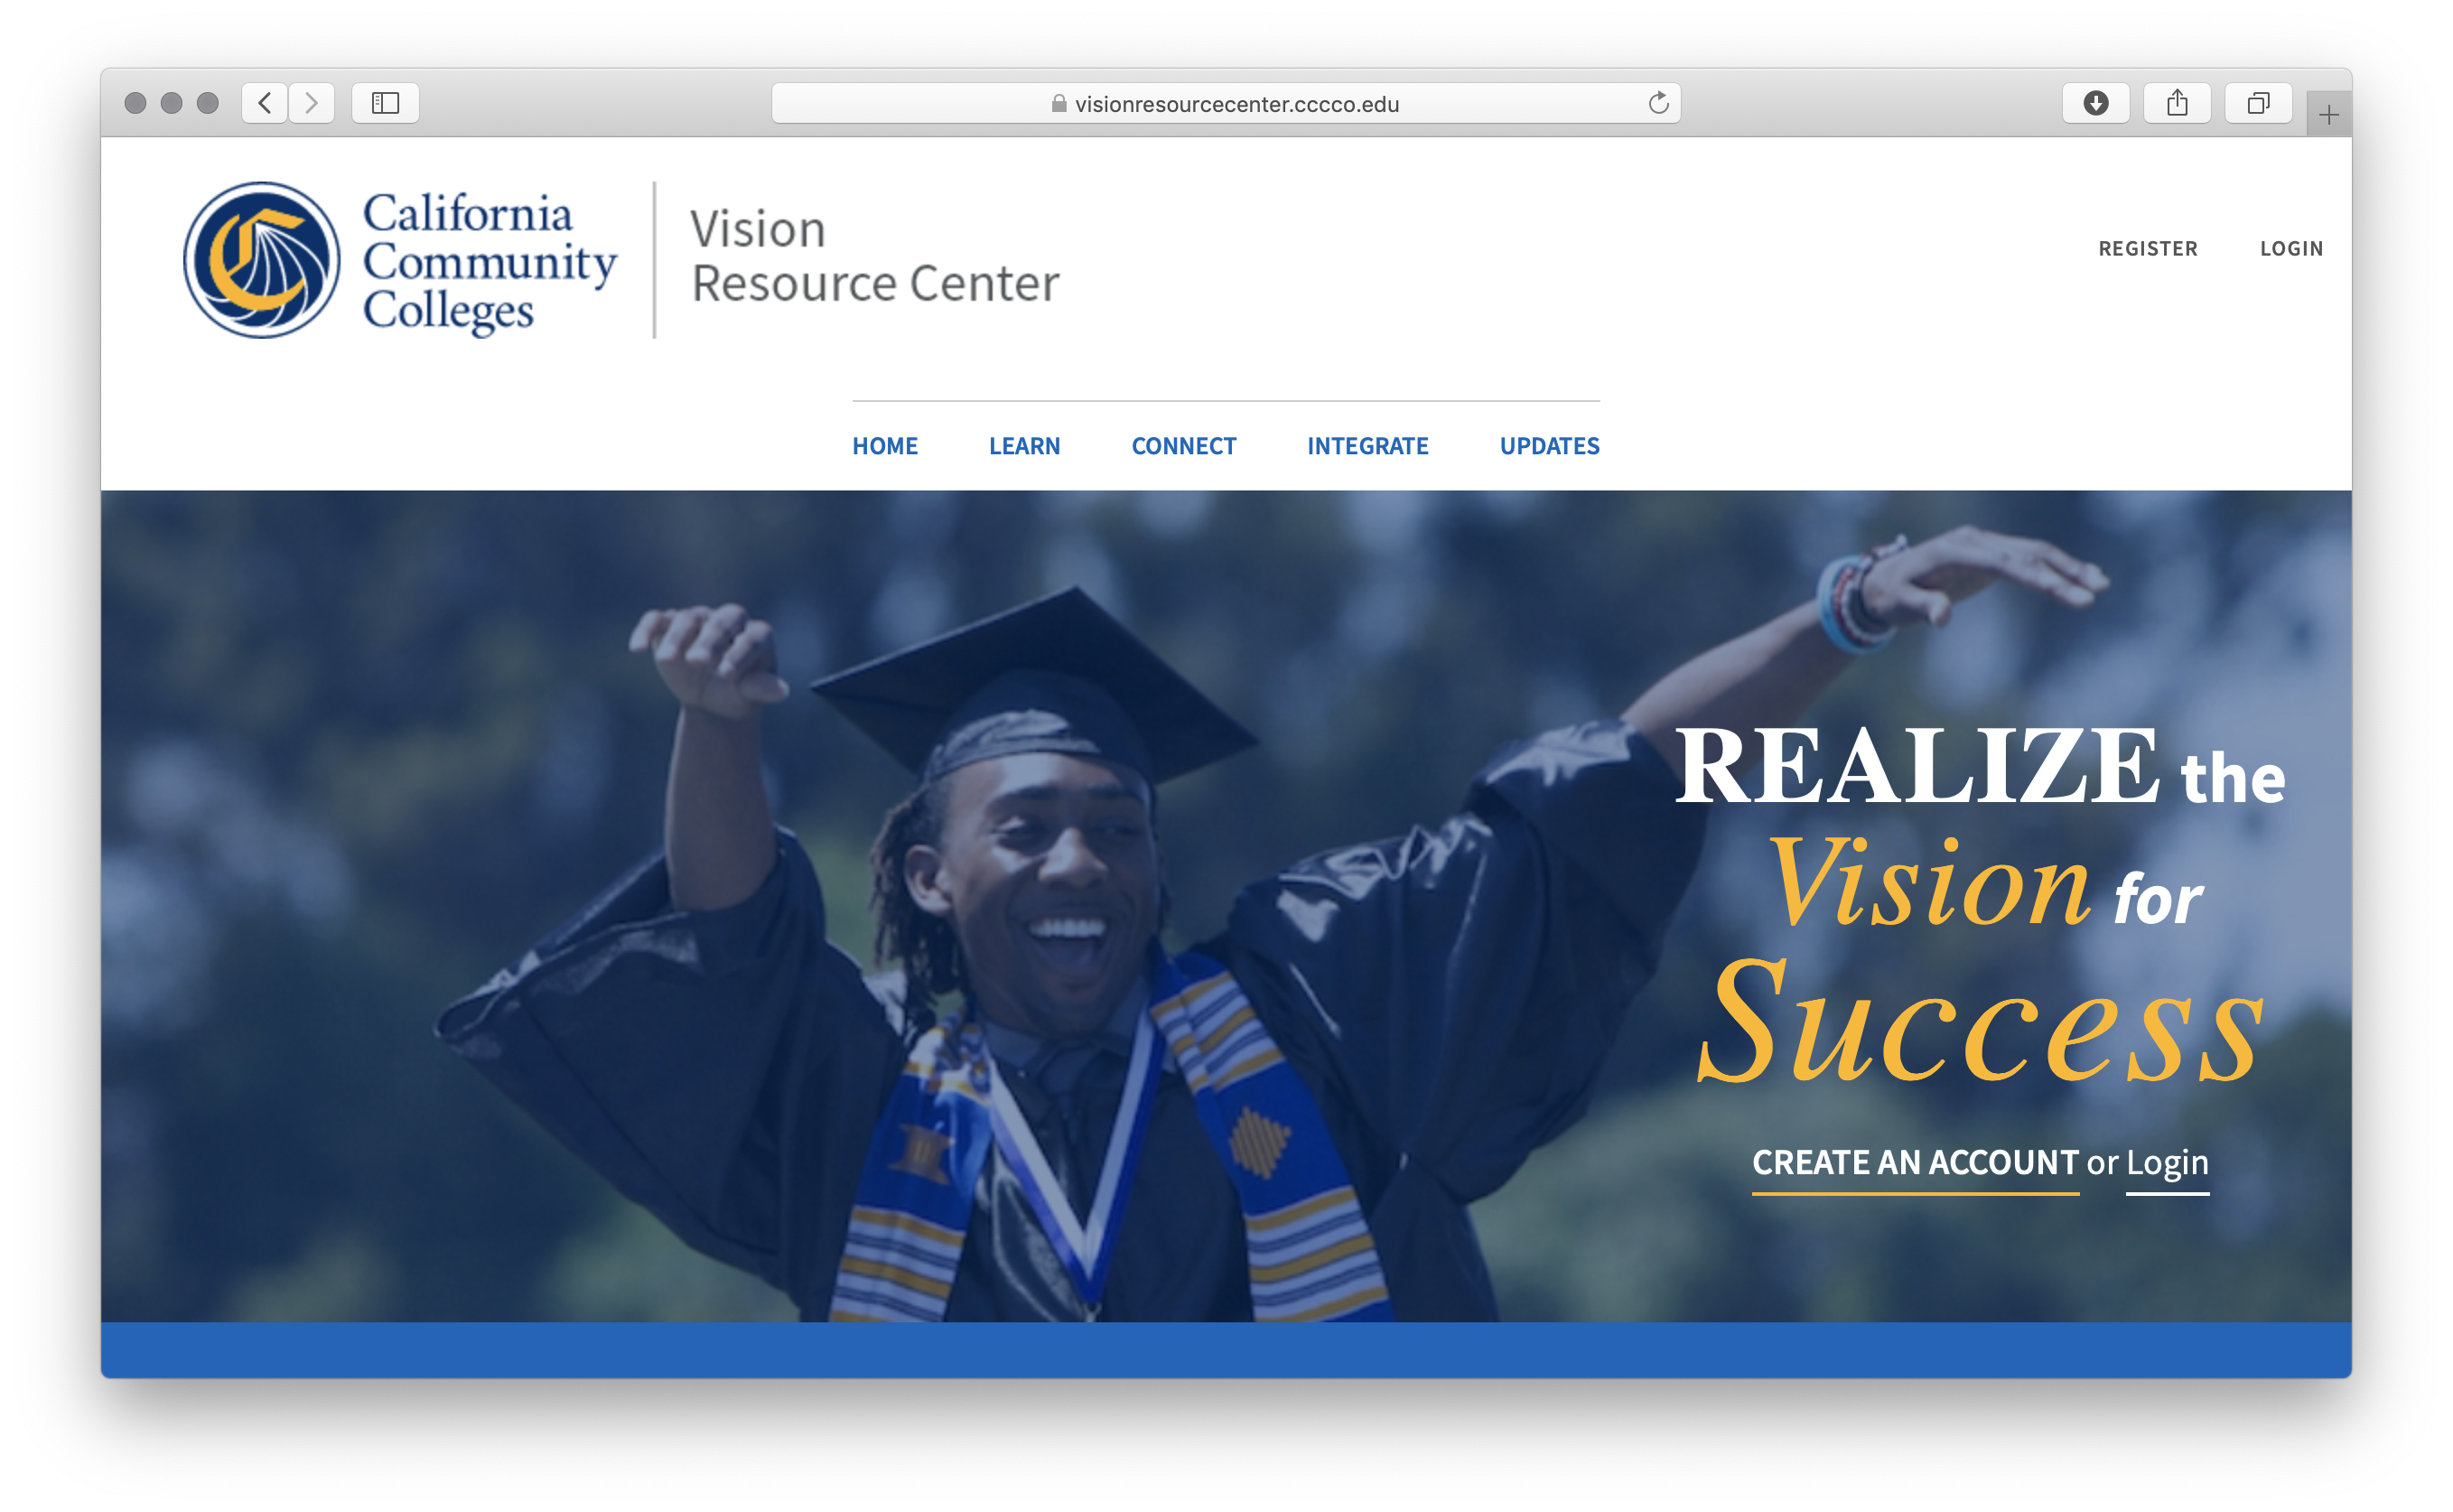 Screenshot of the Vision Resource Center website